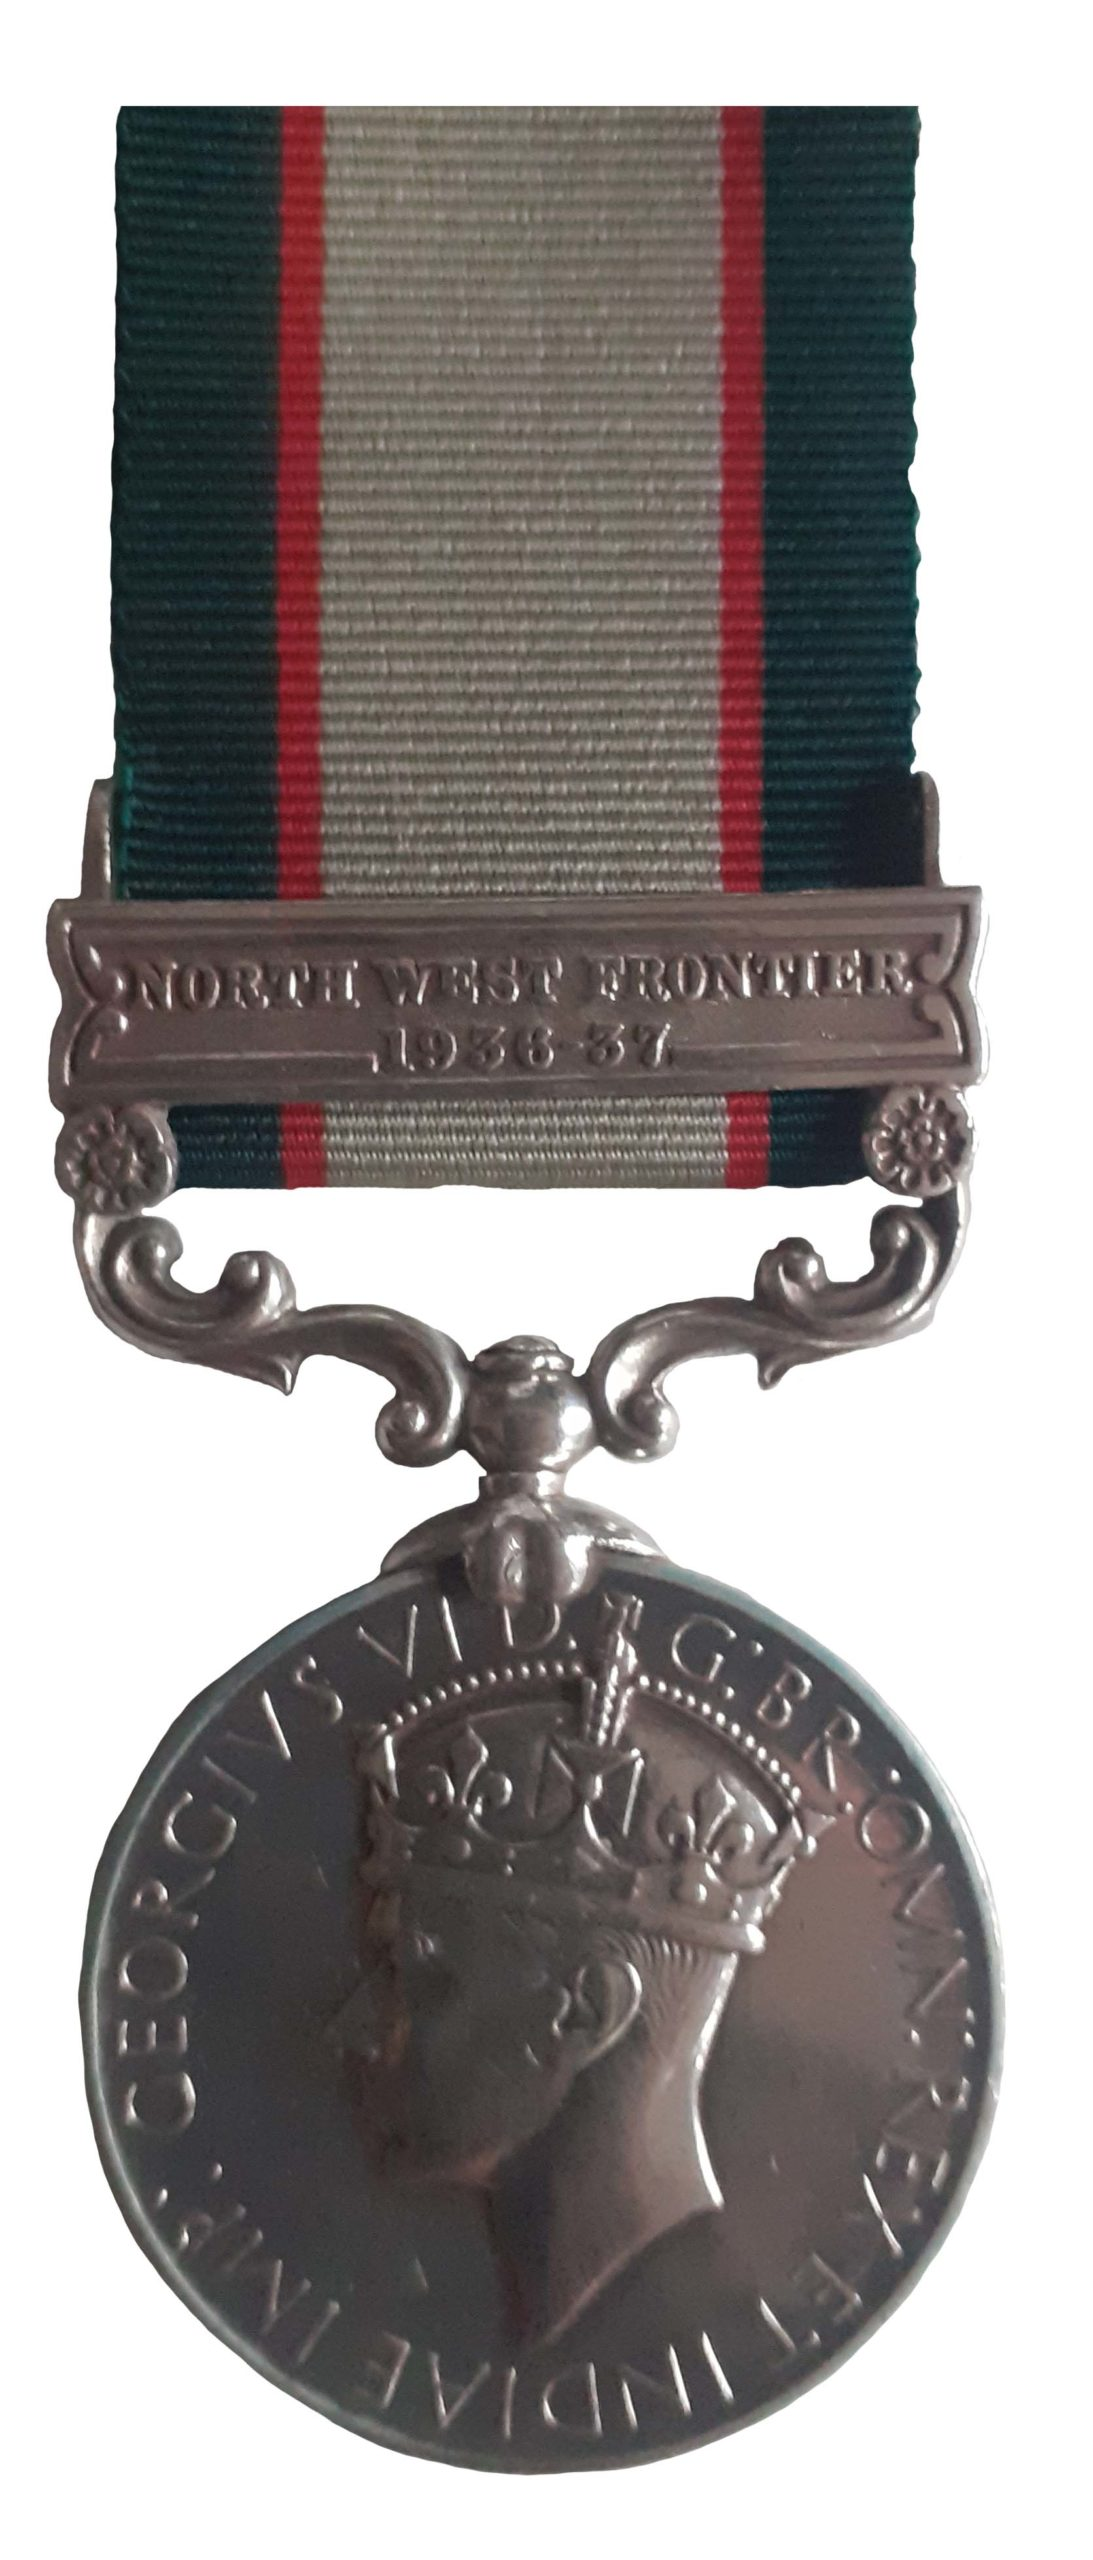 India General Service Medal 1936-39, one clasp, to Sepoy Rasul Khan